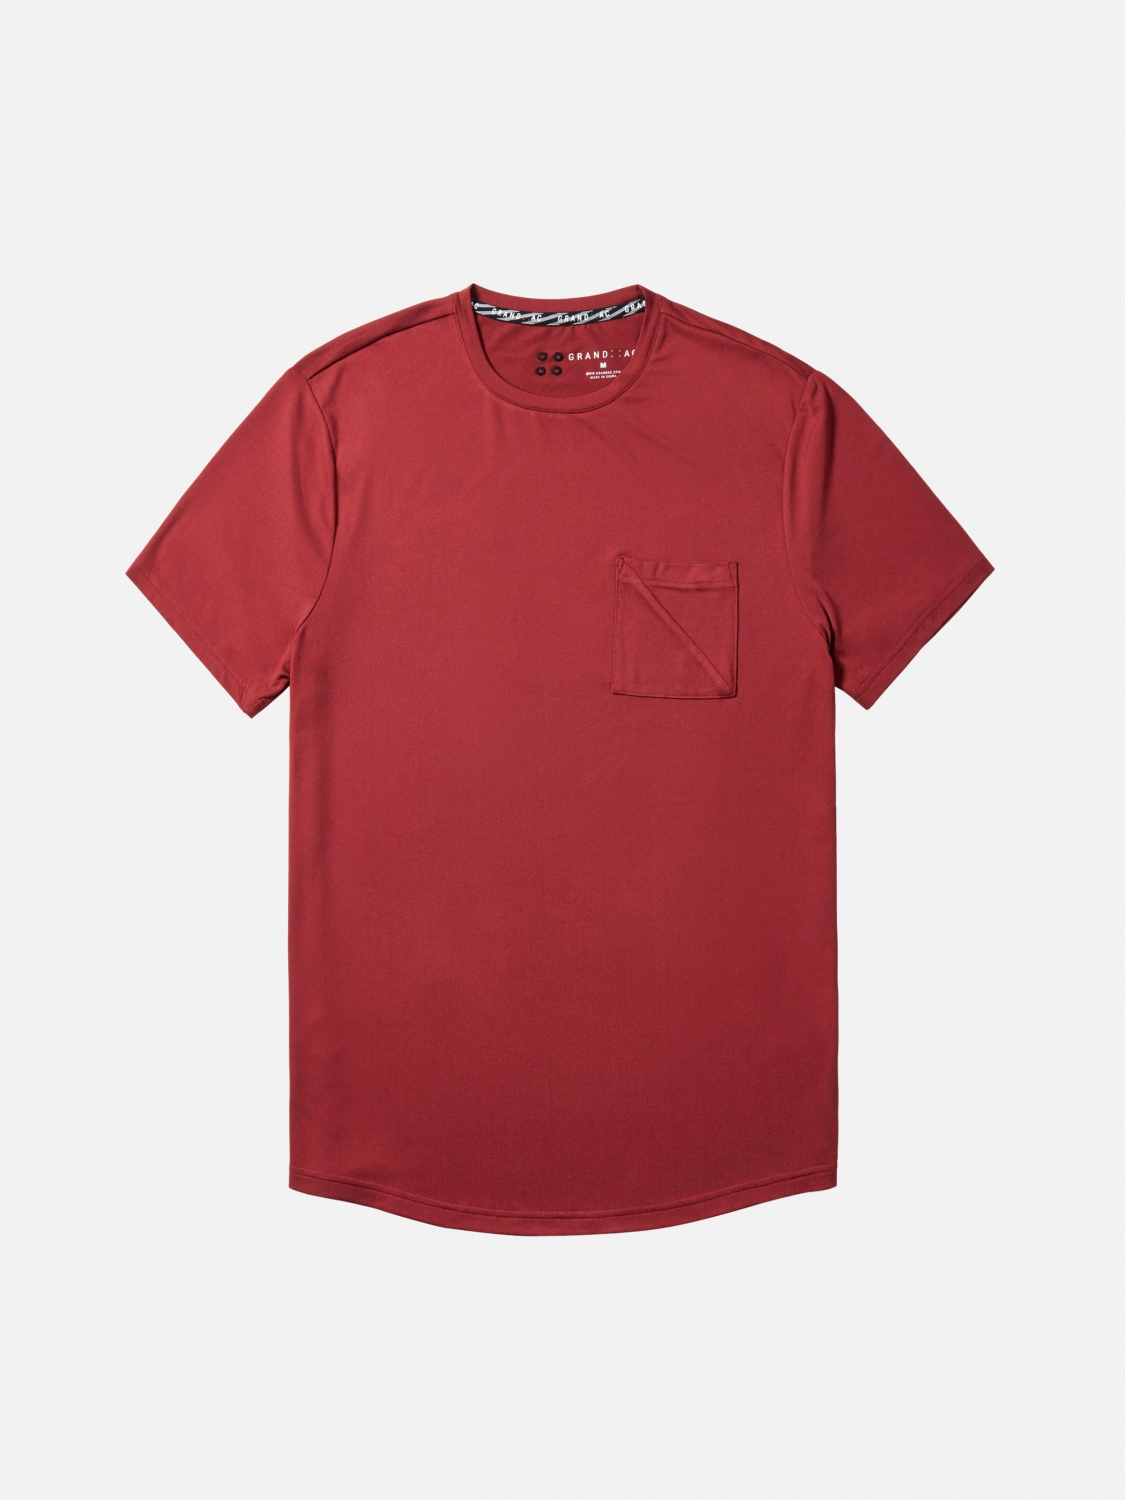 jonas short sleeve - red